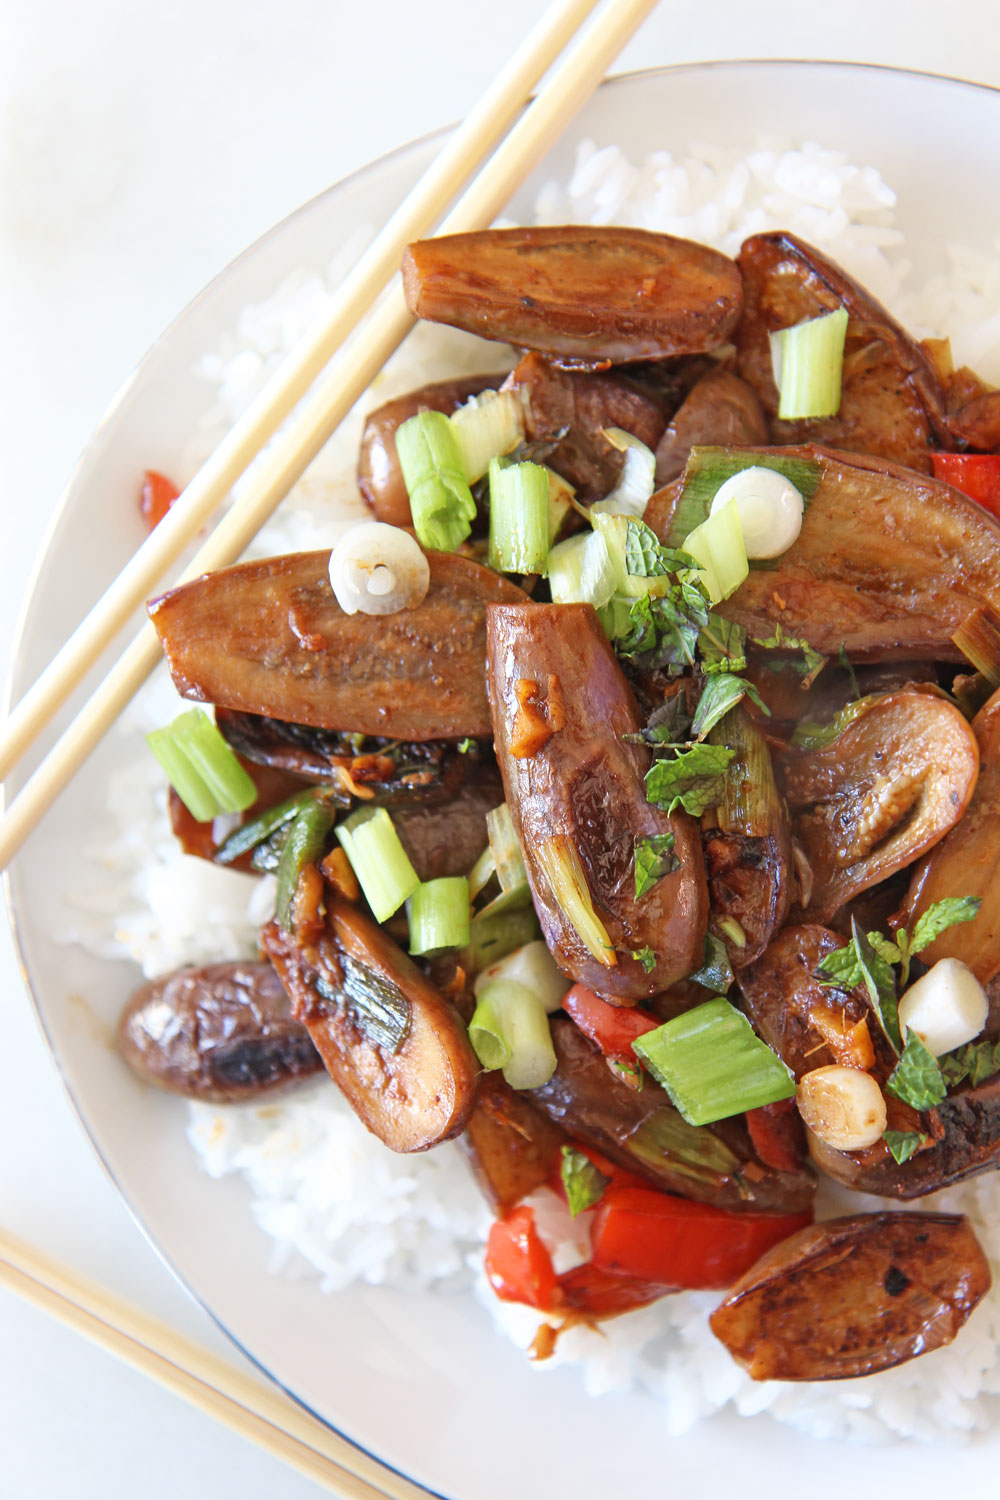 Quick Stir Fry Garlic Eggplant Recipe. Grab ginger garlic, hosin sauce, soy sauce, and eggplant. This is a quick 15 minute dinner. My favorite Sunday dinner. www.ChopHappy.com #eggplant #stirfry